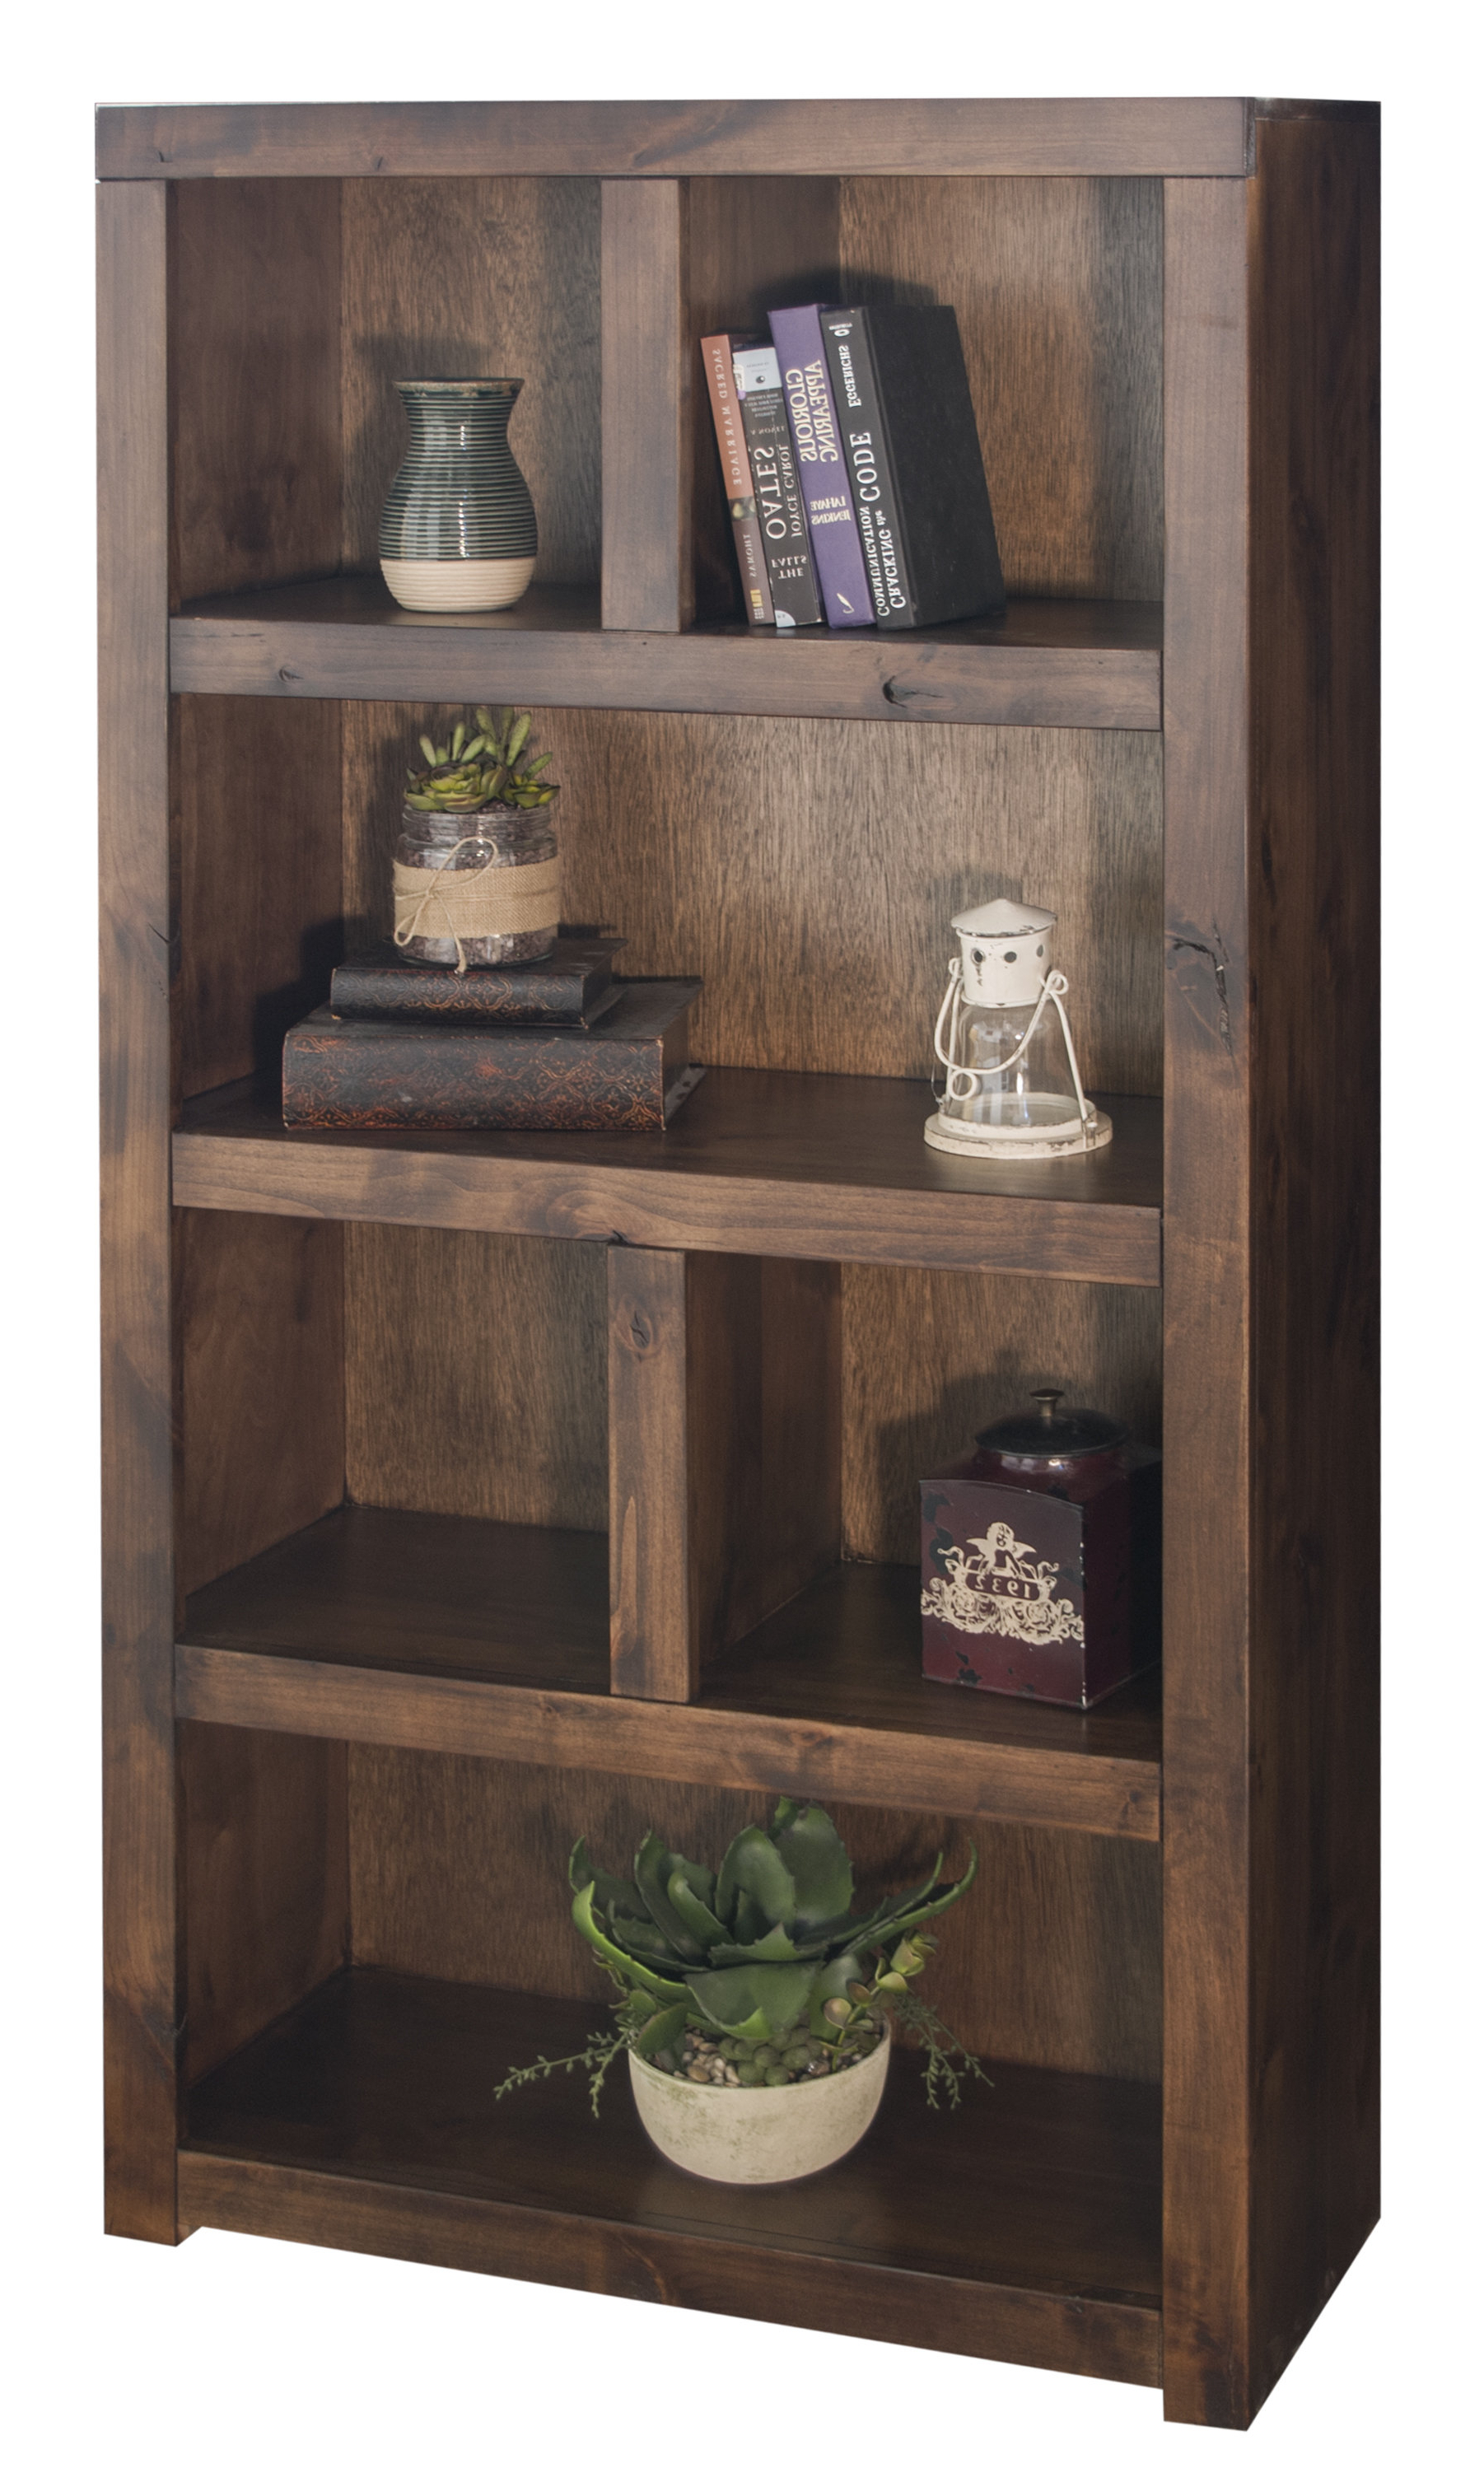 Pooler Standard Bookcase With Well Known Orford Standard Bookcases (View 7 of 20)